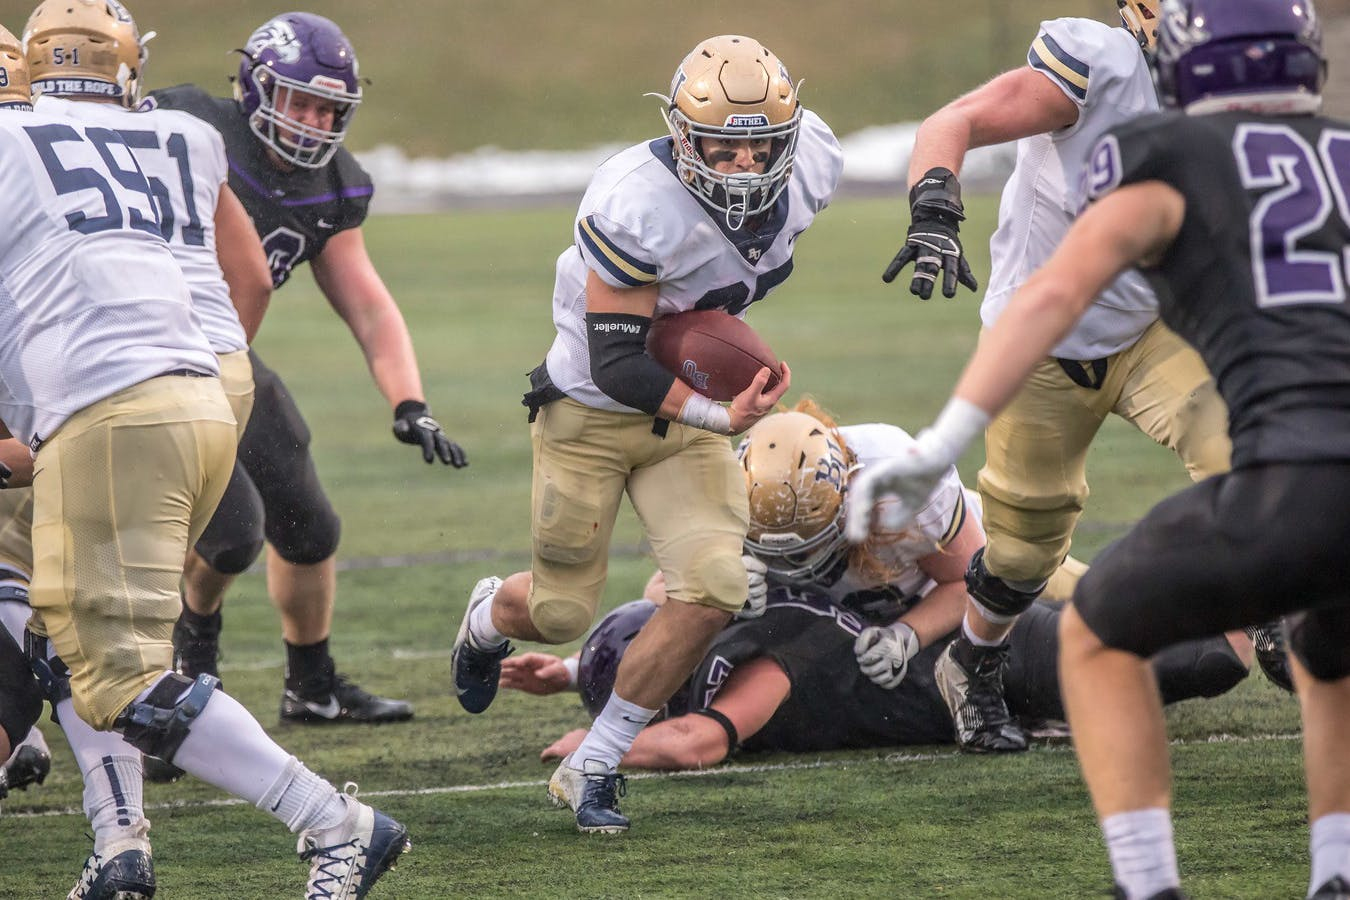 The Bethel University team couldn't overcome early miscues and turnovers in a 26-12 loss to the University of Wisconsin-Whitewater Saturday in Whitewater, Wisconsin.